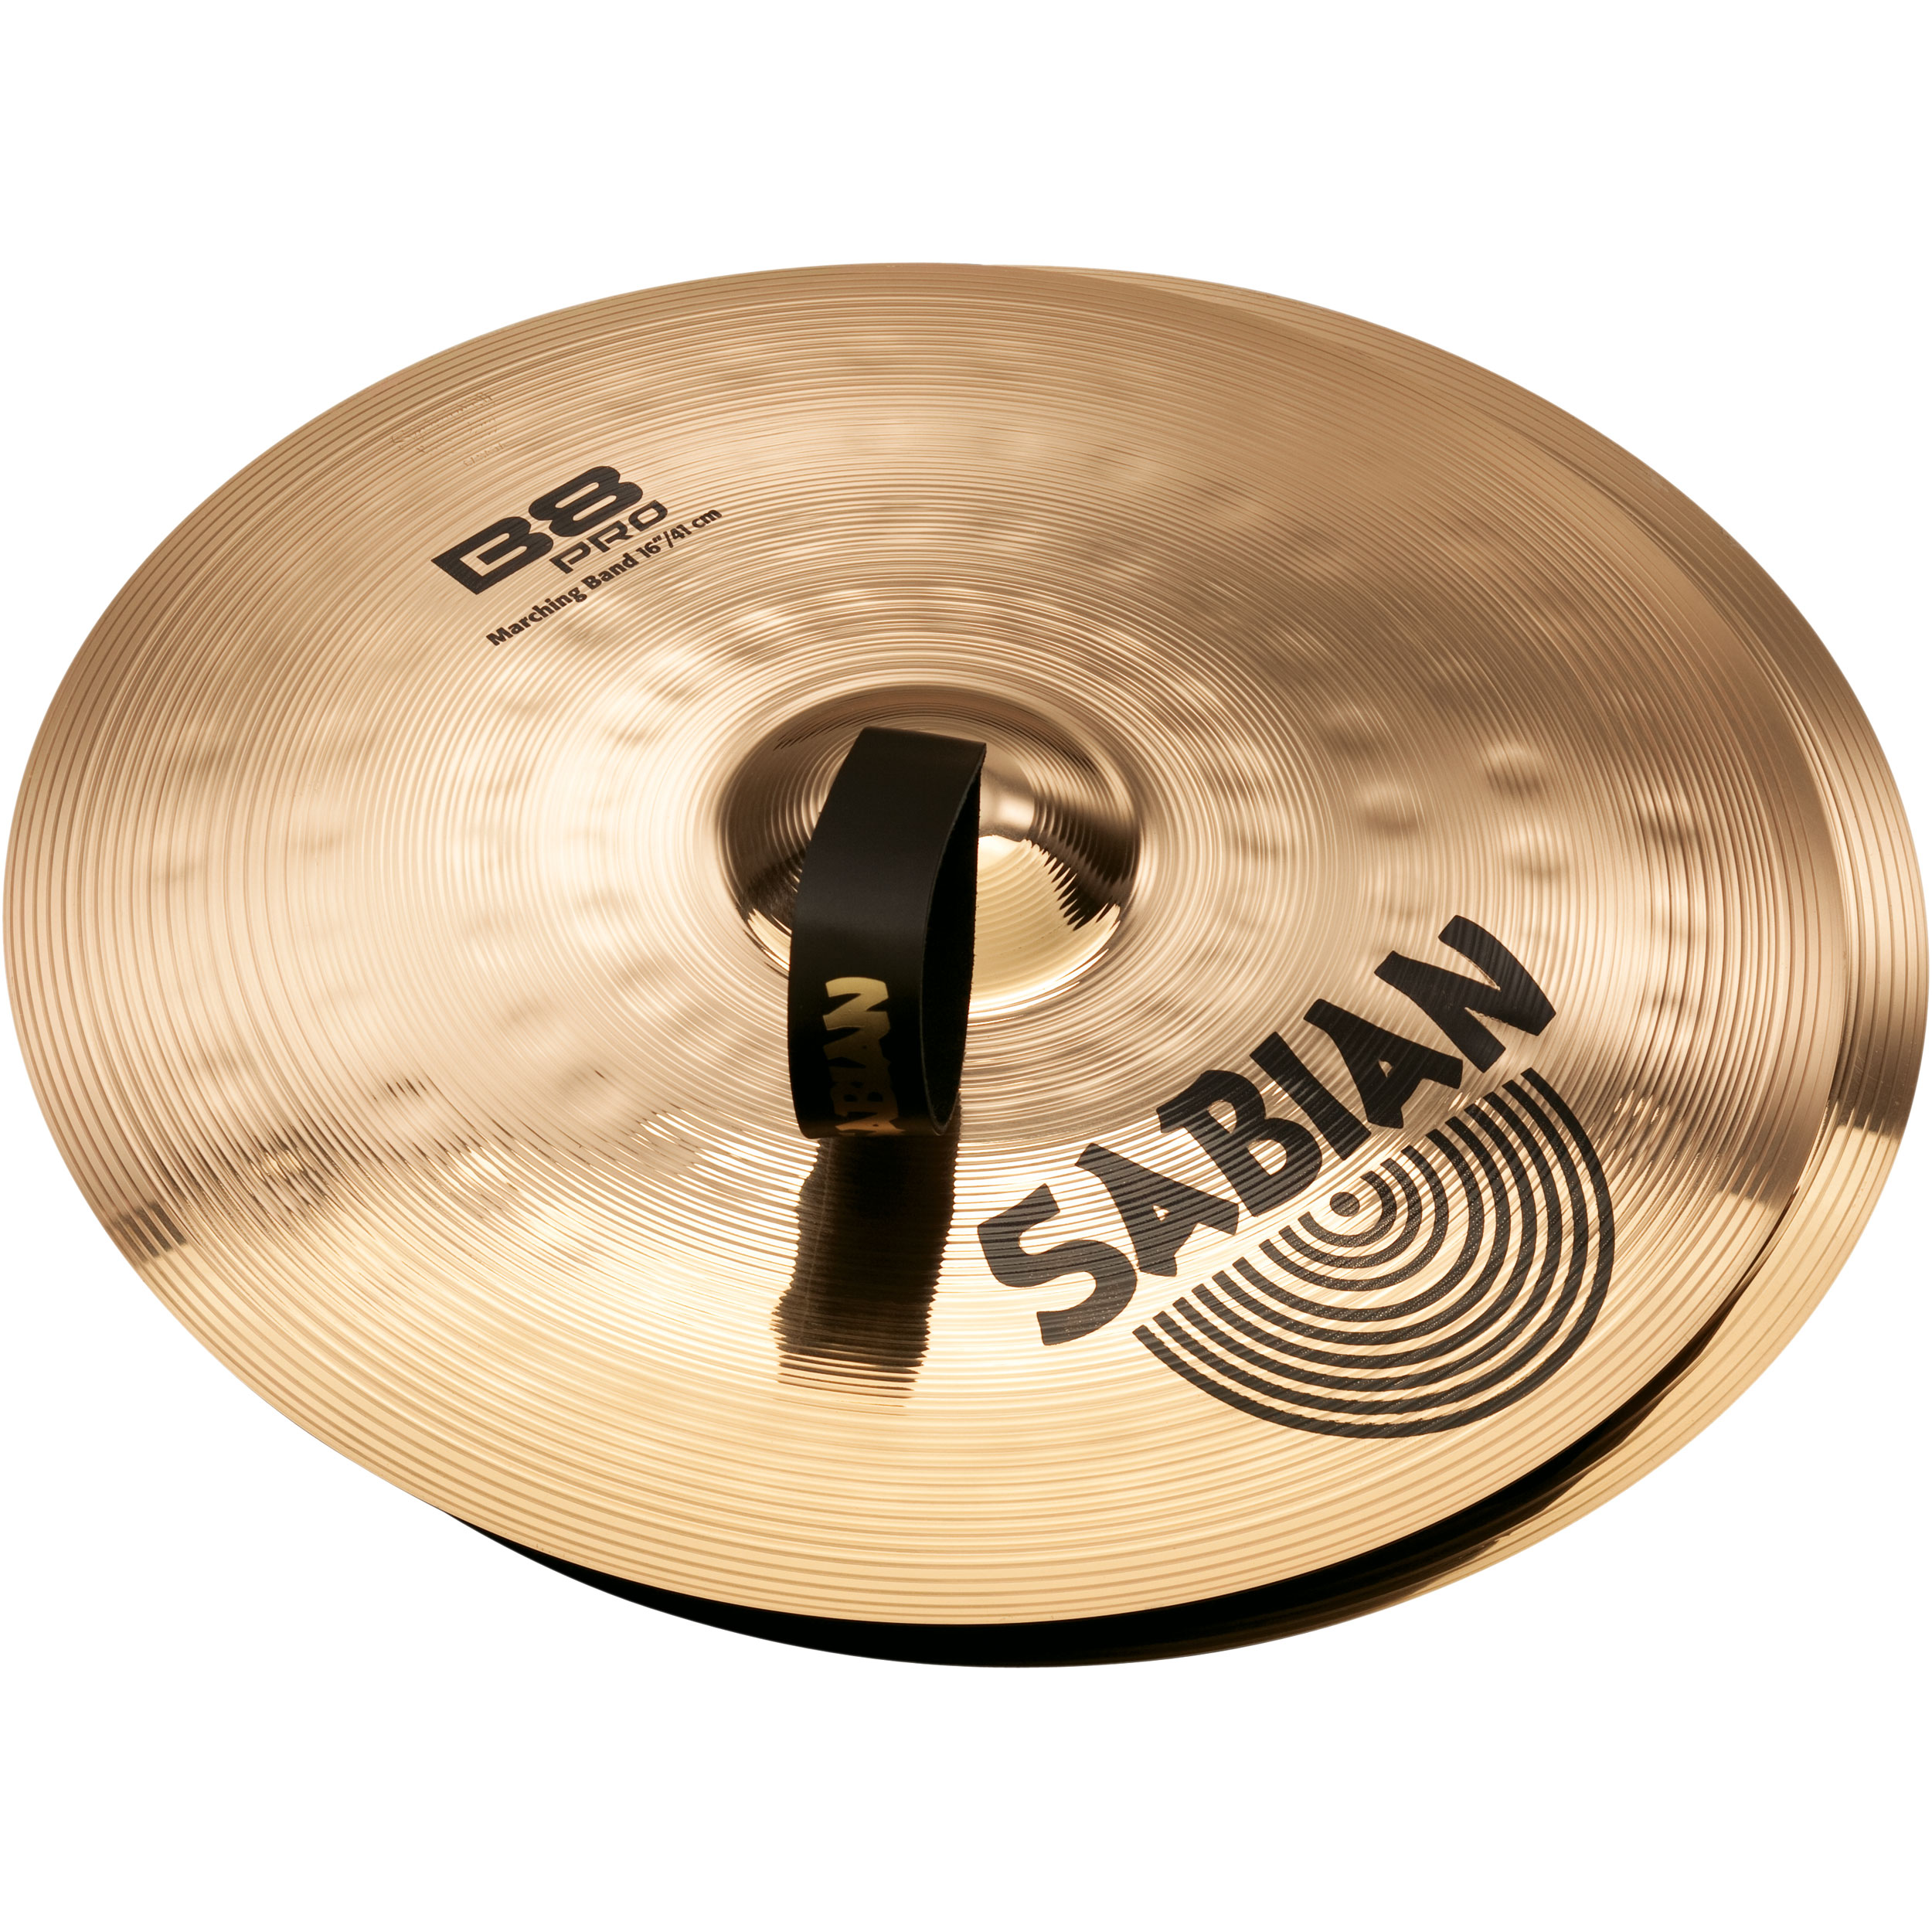 "Sabian 16"" B8 Pro Marching Band Hand Cymbal Pair"